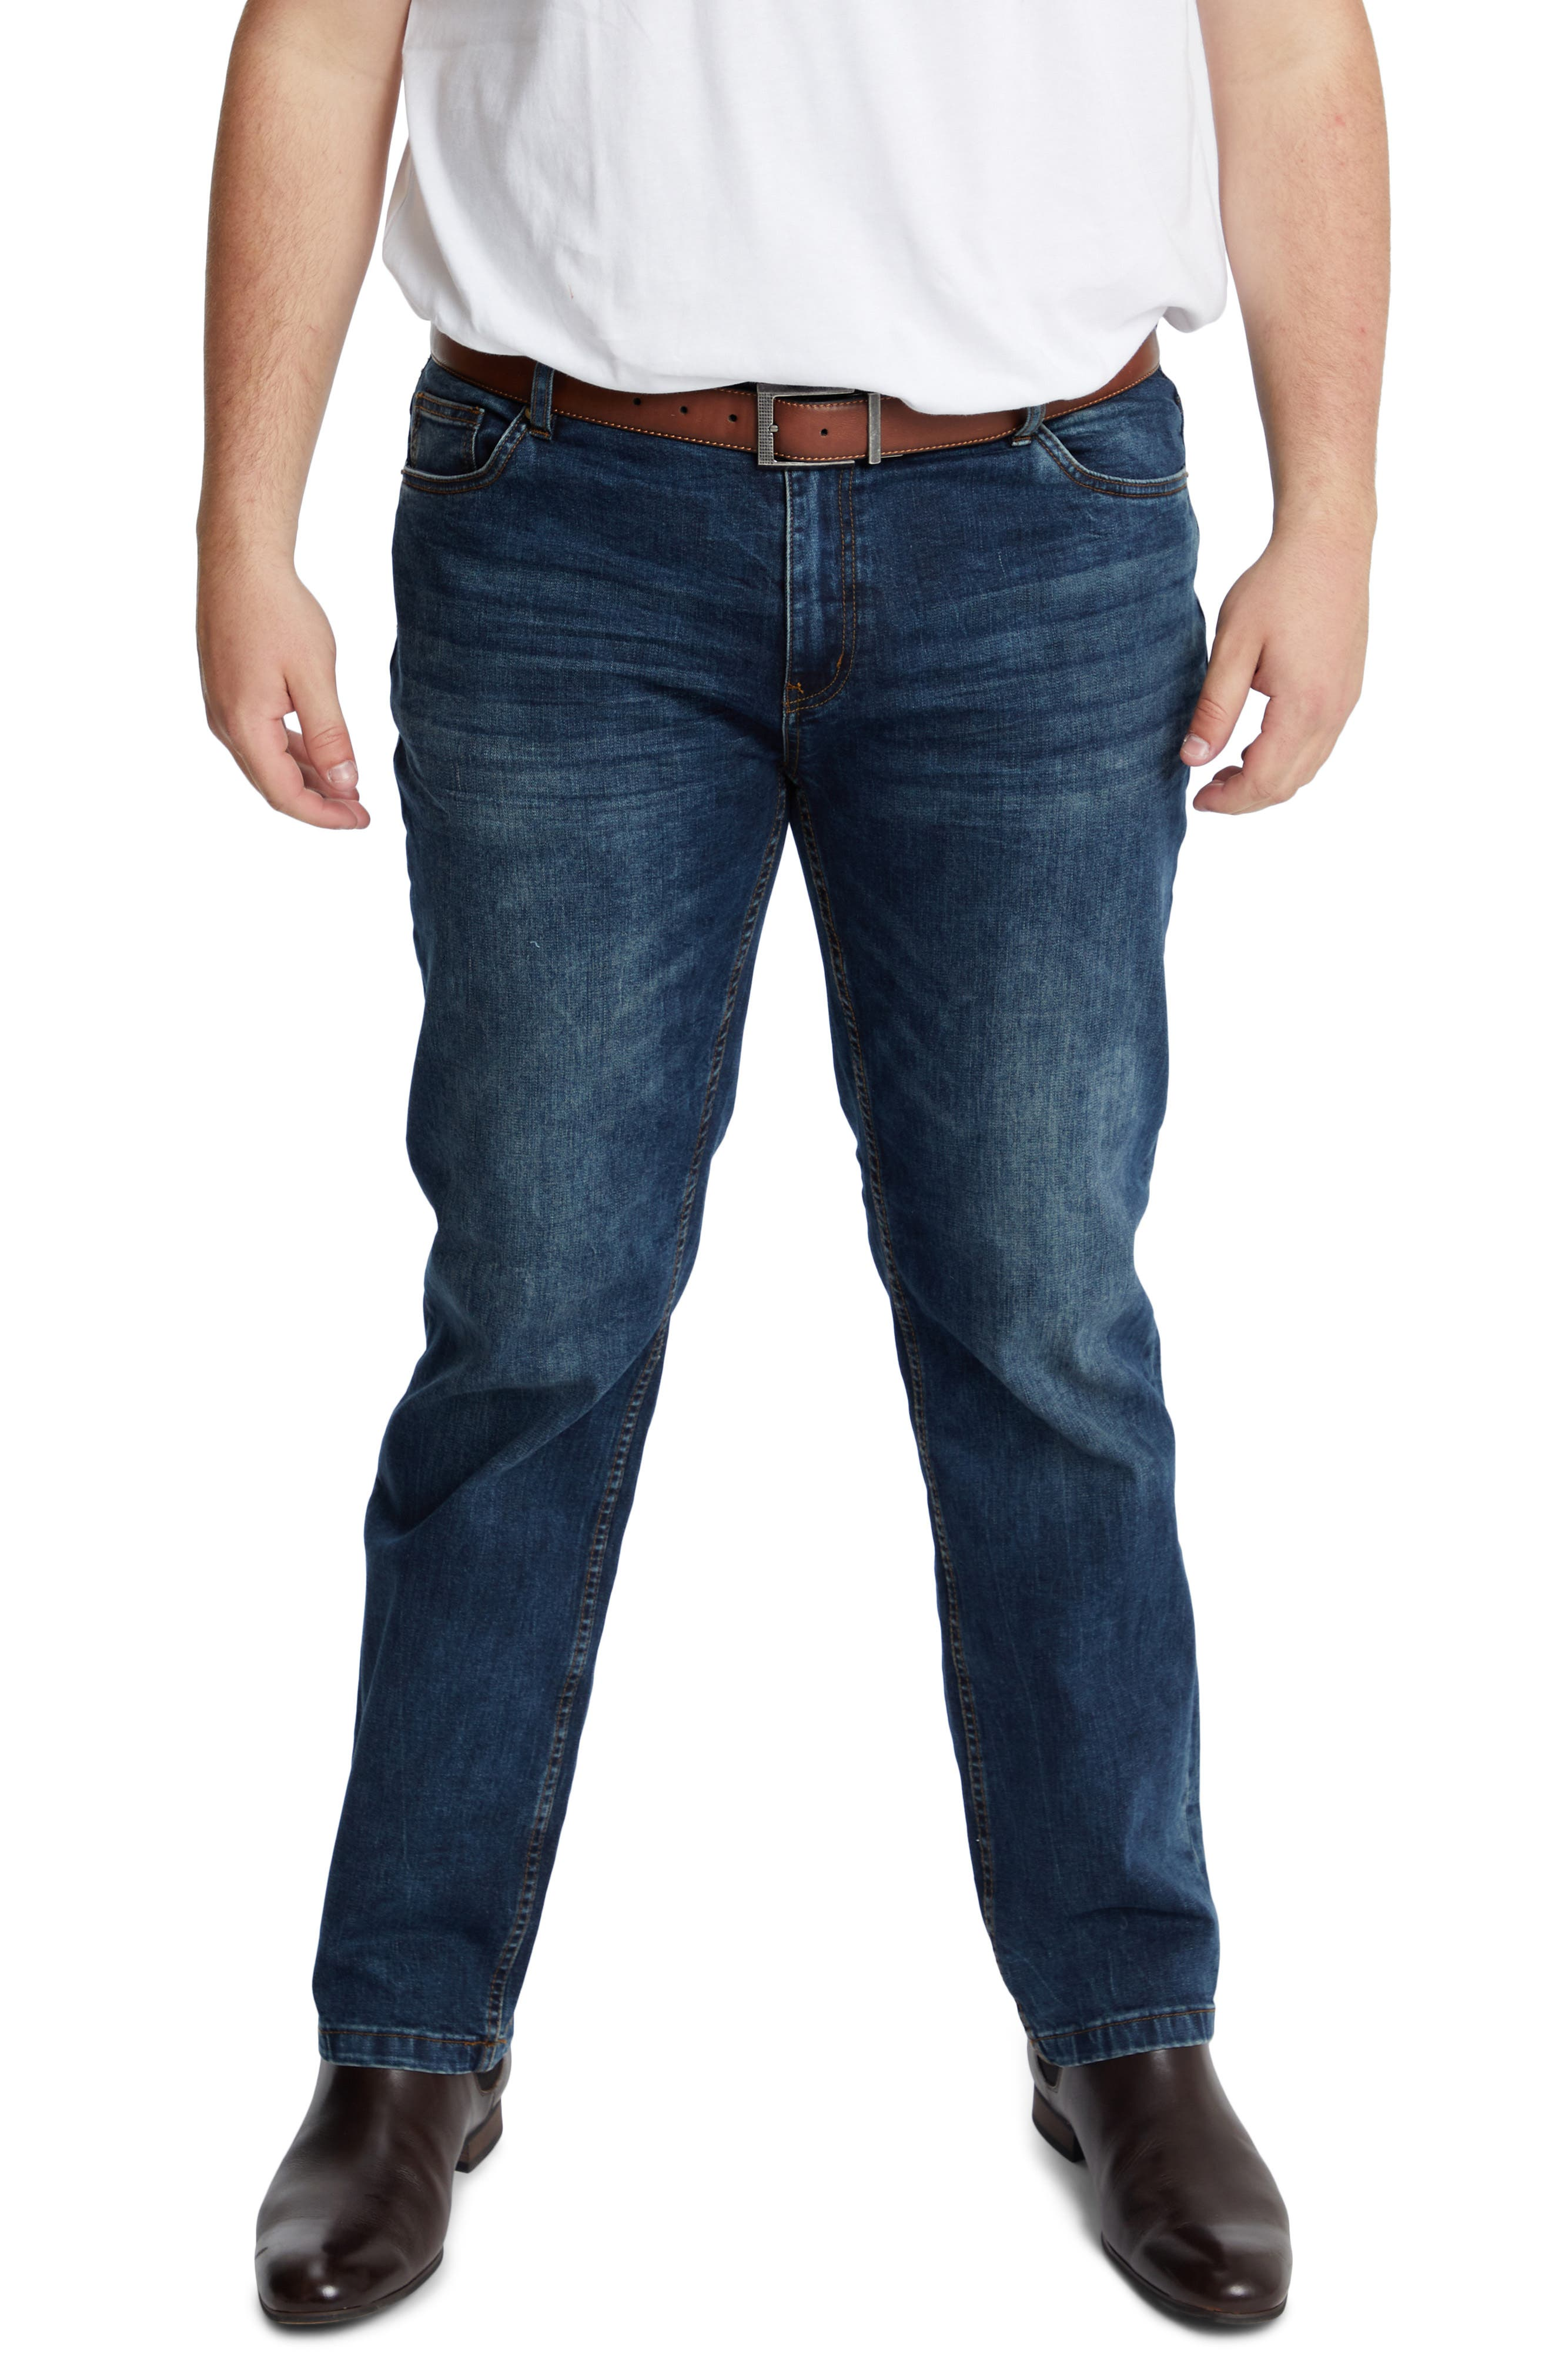 Doherty Jeans